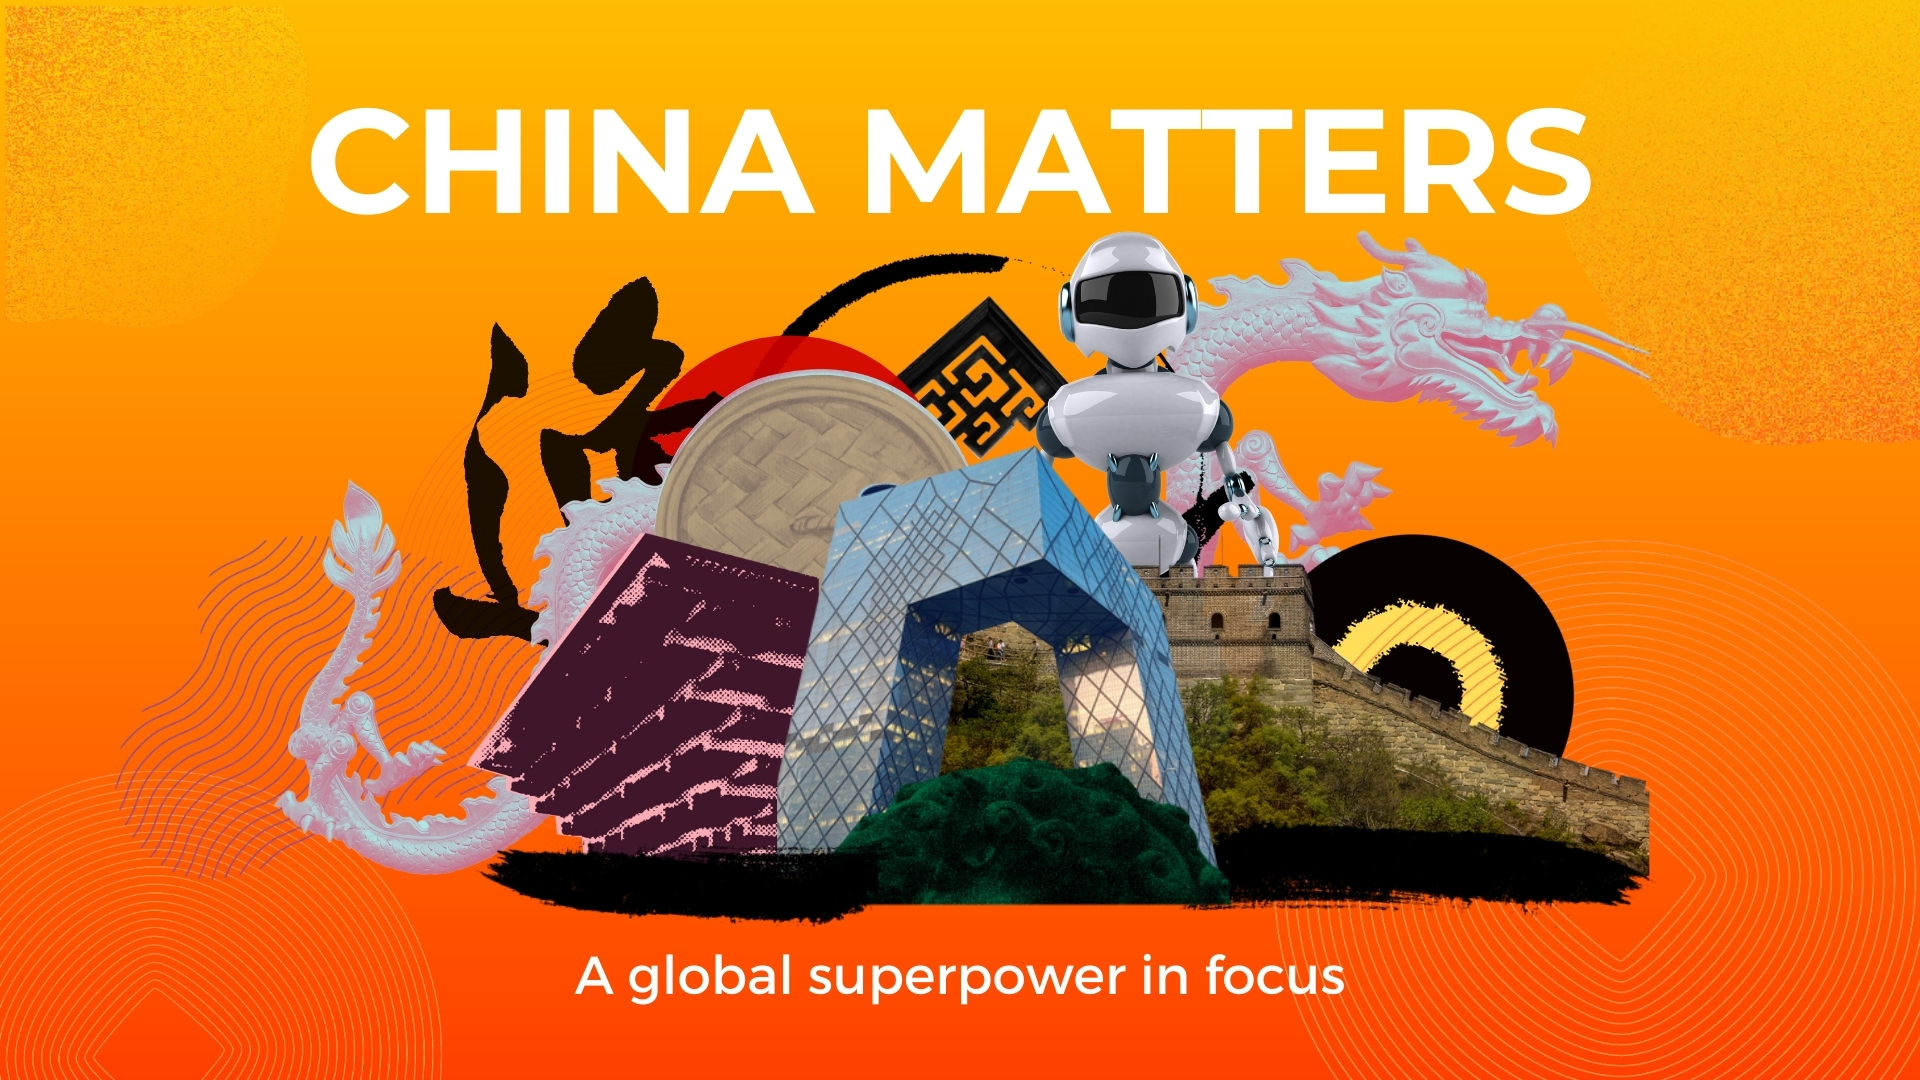 China Matters: A Global Superpower in Focus